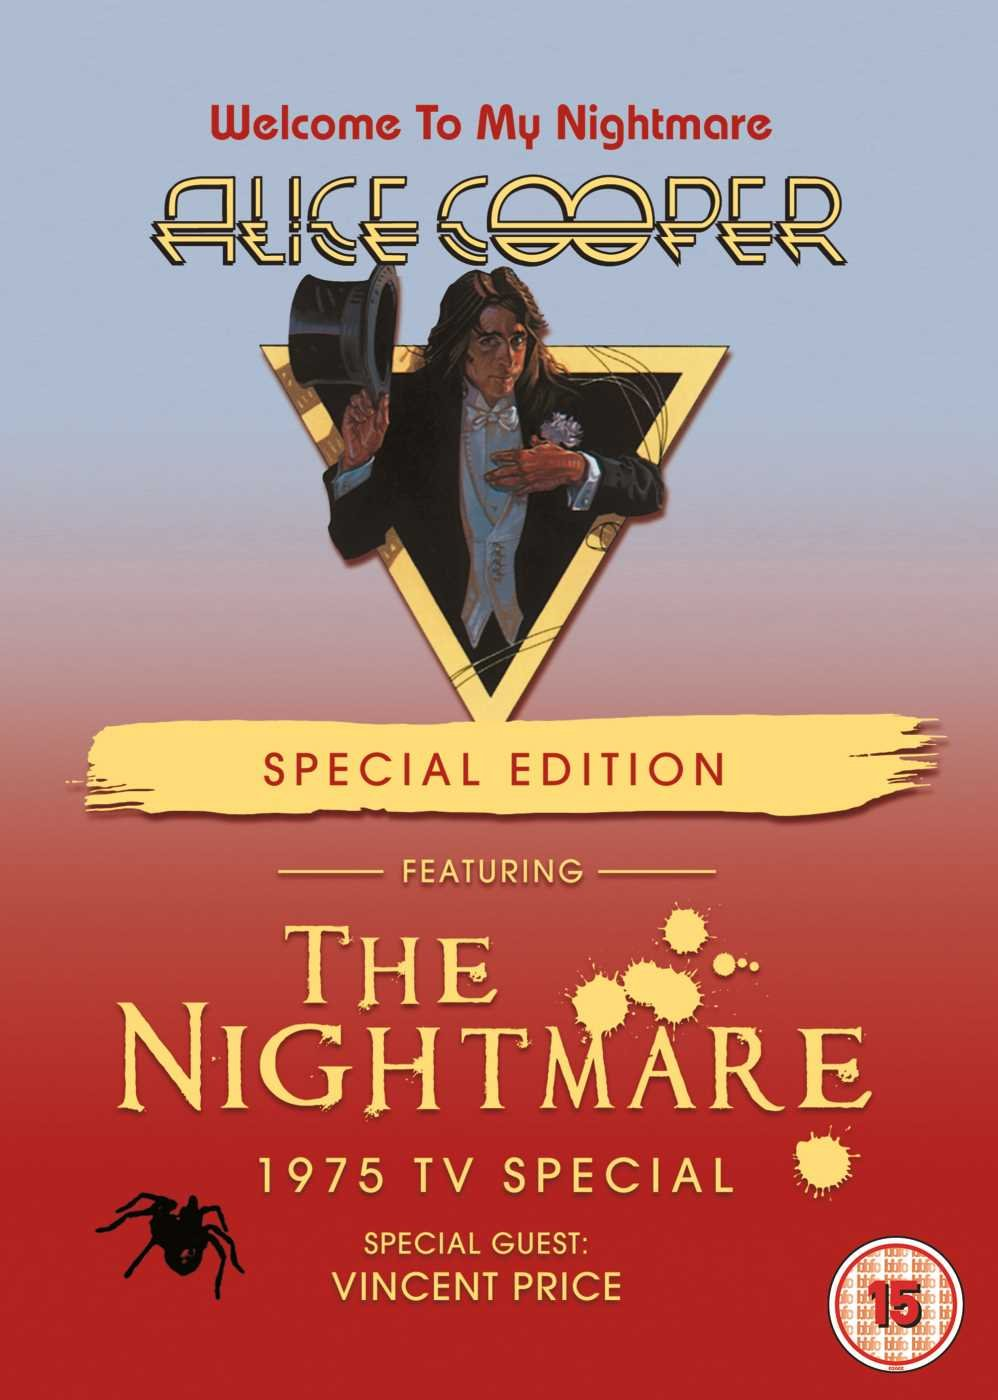 Amazon Com Welcome To My Nightmare Special Edition Dvd Alice Cooper David Winters Jorn Winther Movies Tv Nightmare originally spoke in a higher voice when reading stories. my nightmare special edition dvd